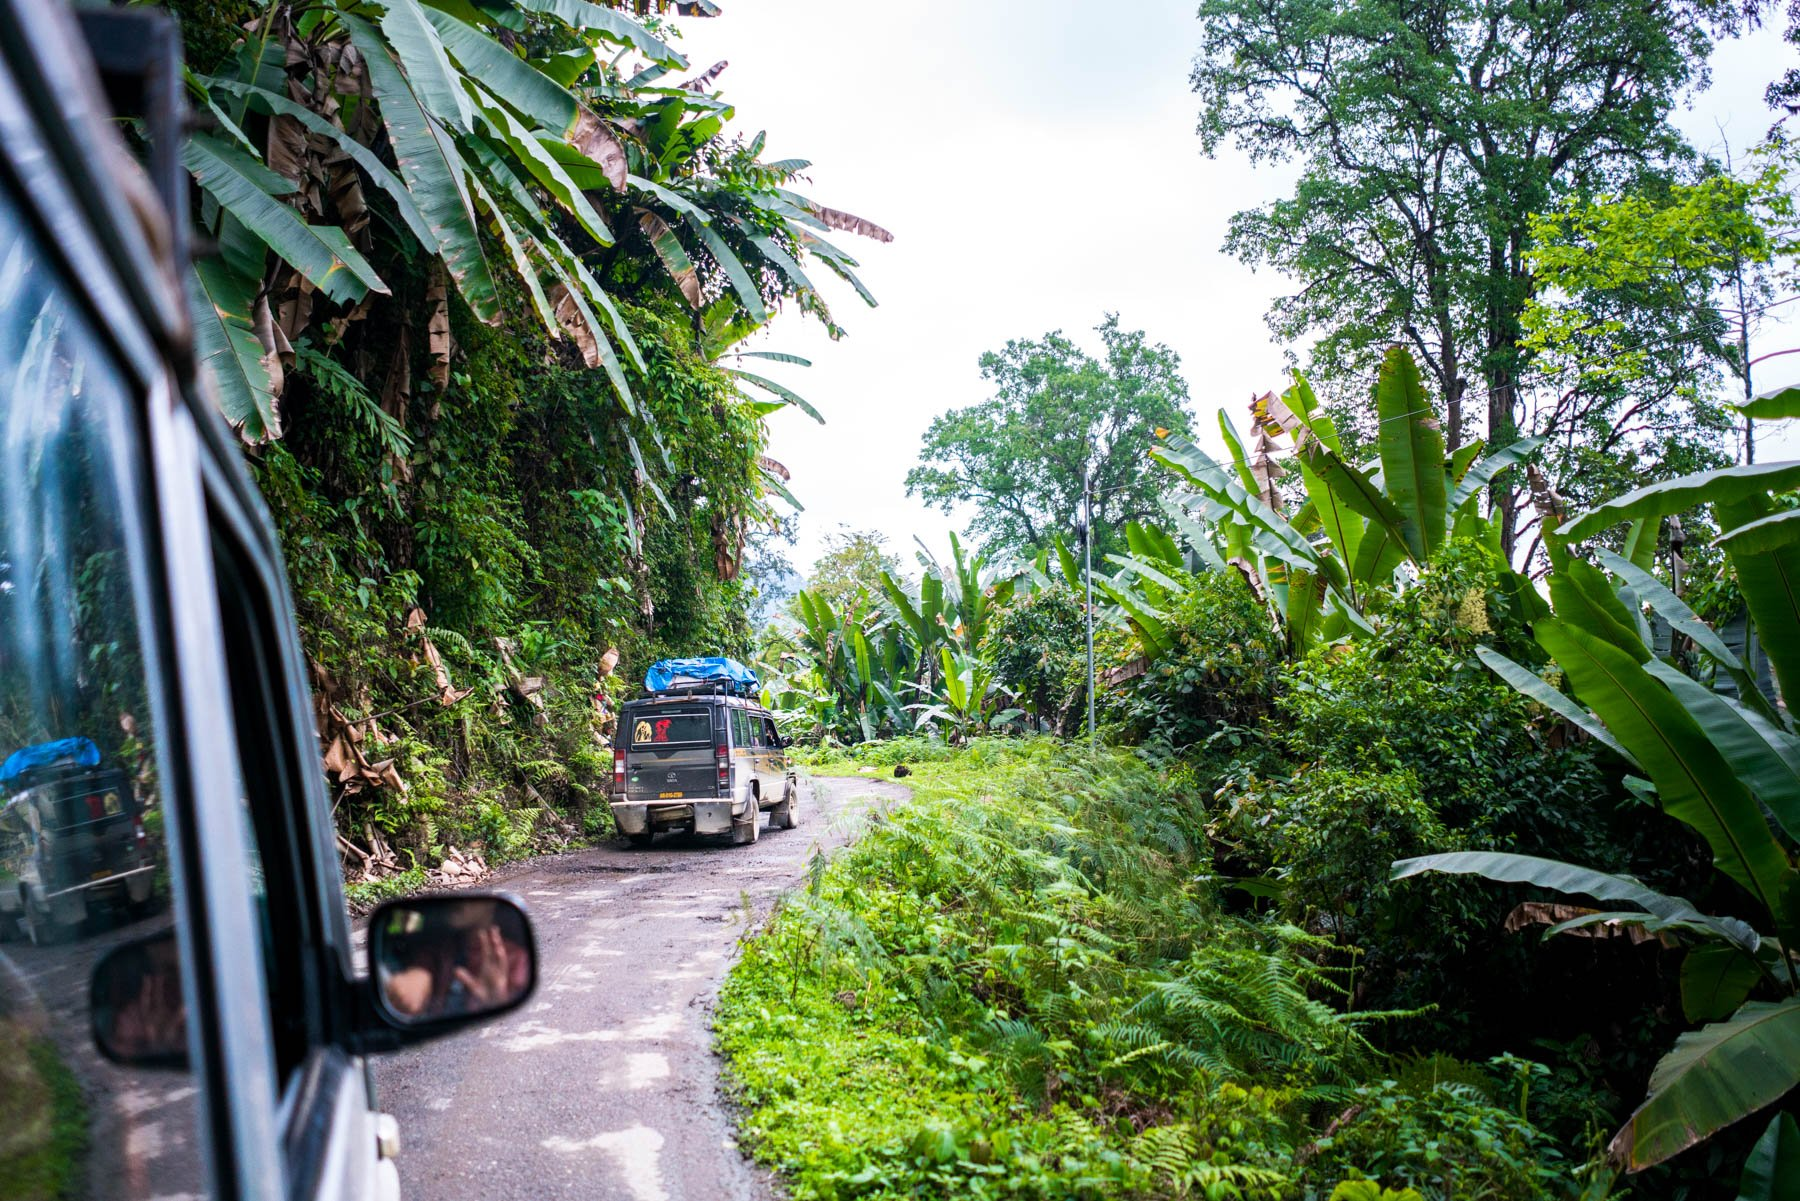 Backpacking Arunachal Pradesh travel guide - Sumos driving the road from Ziro to Daporijo - Lost With Purpose